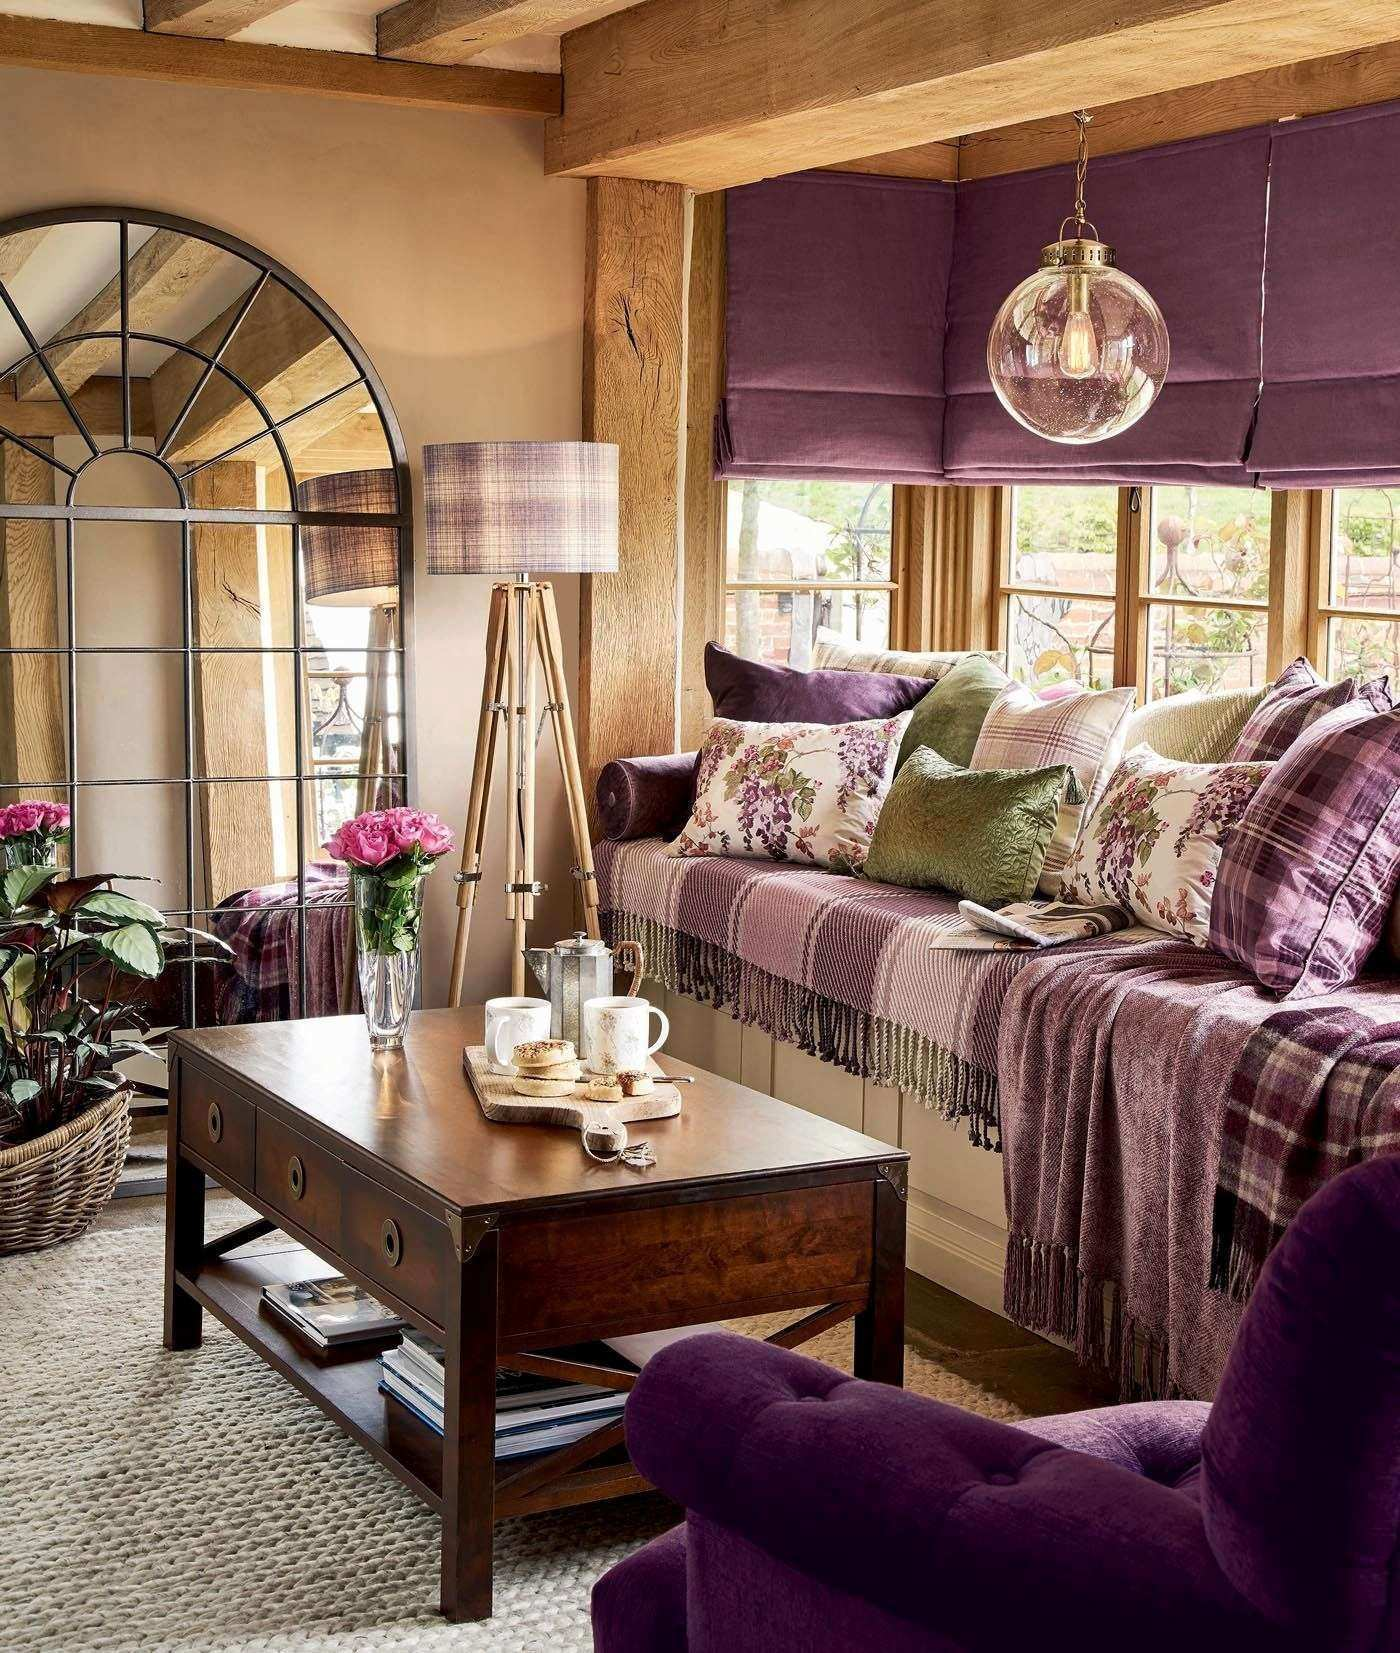 Purple and Teal Room Decor Awesome 30 Inspirational Interior Design